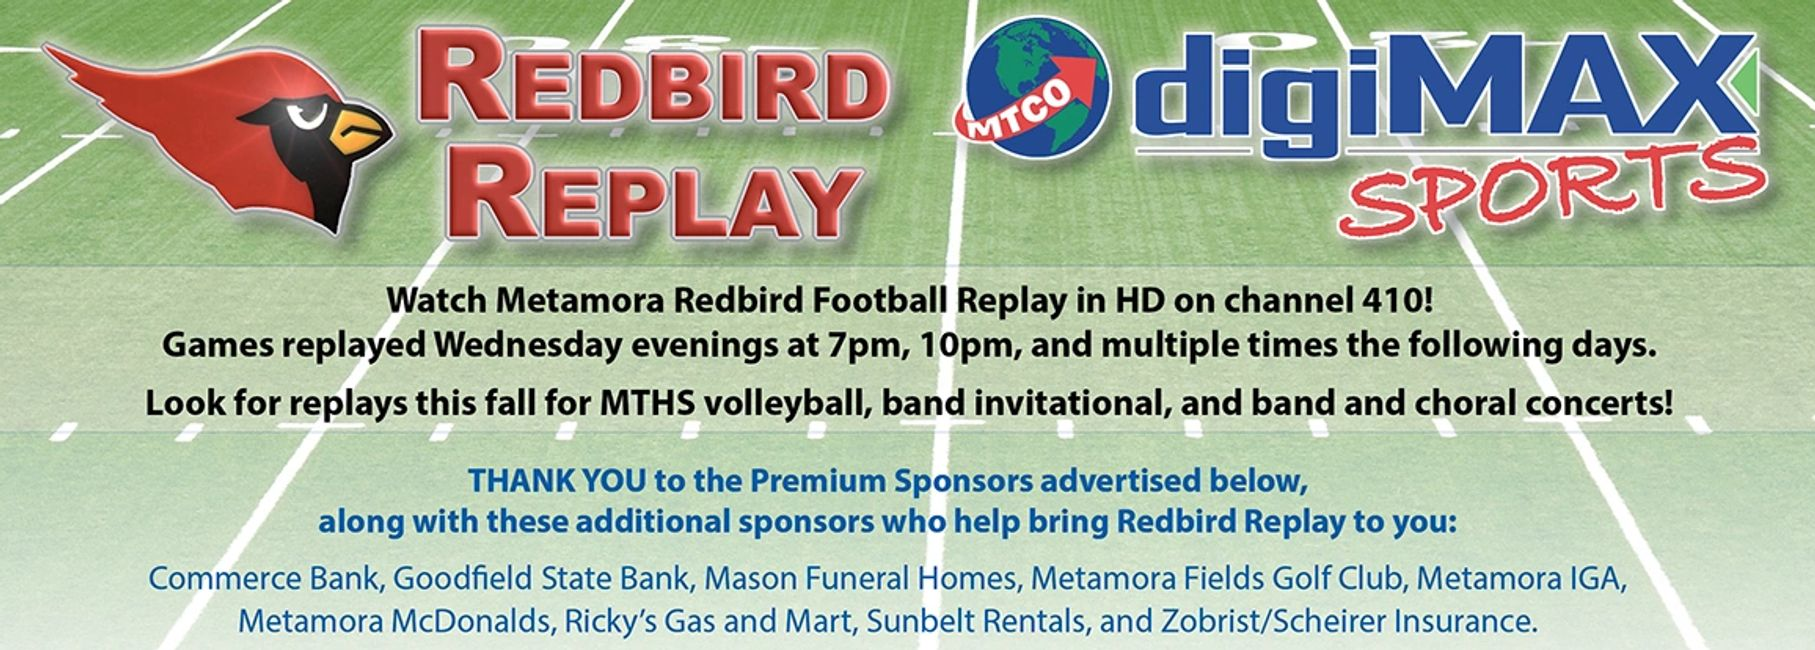 REDBIRD REPLAY